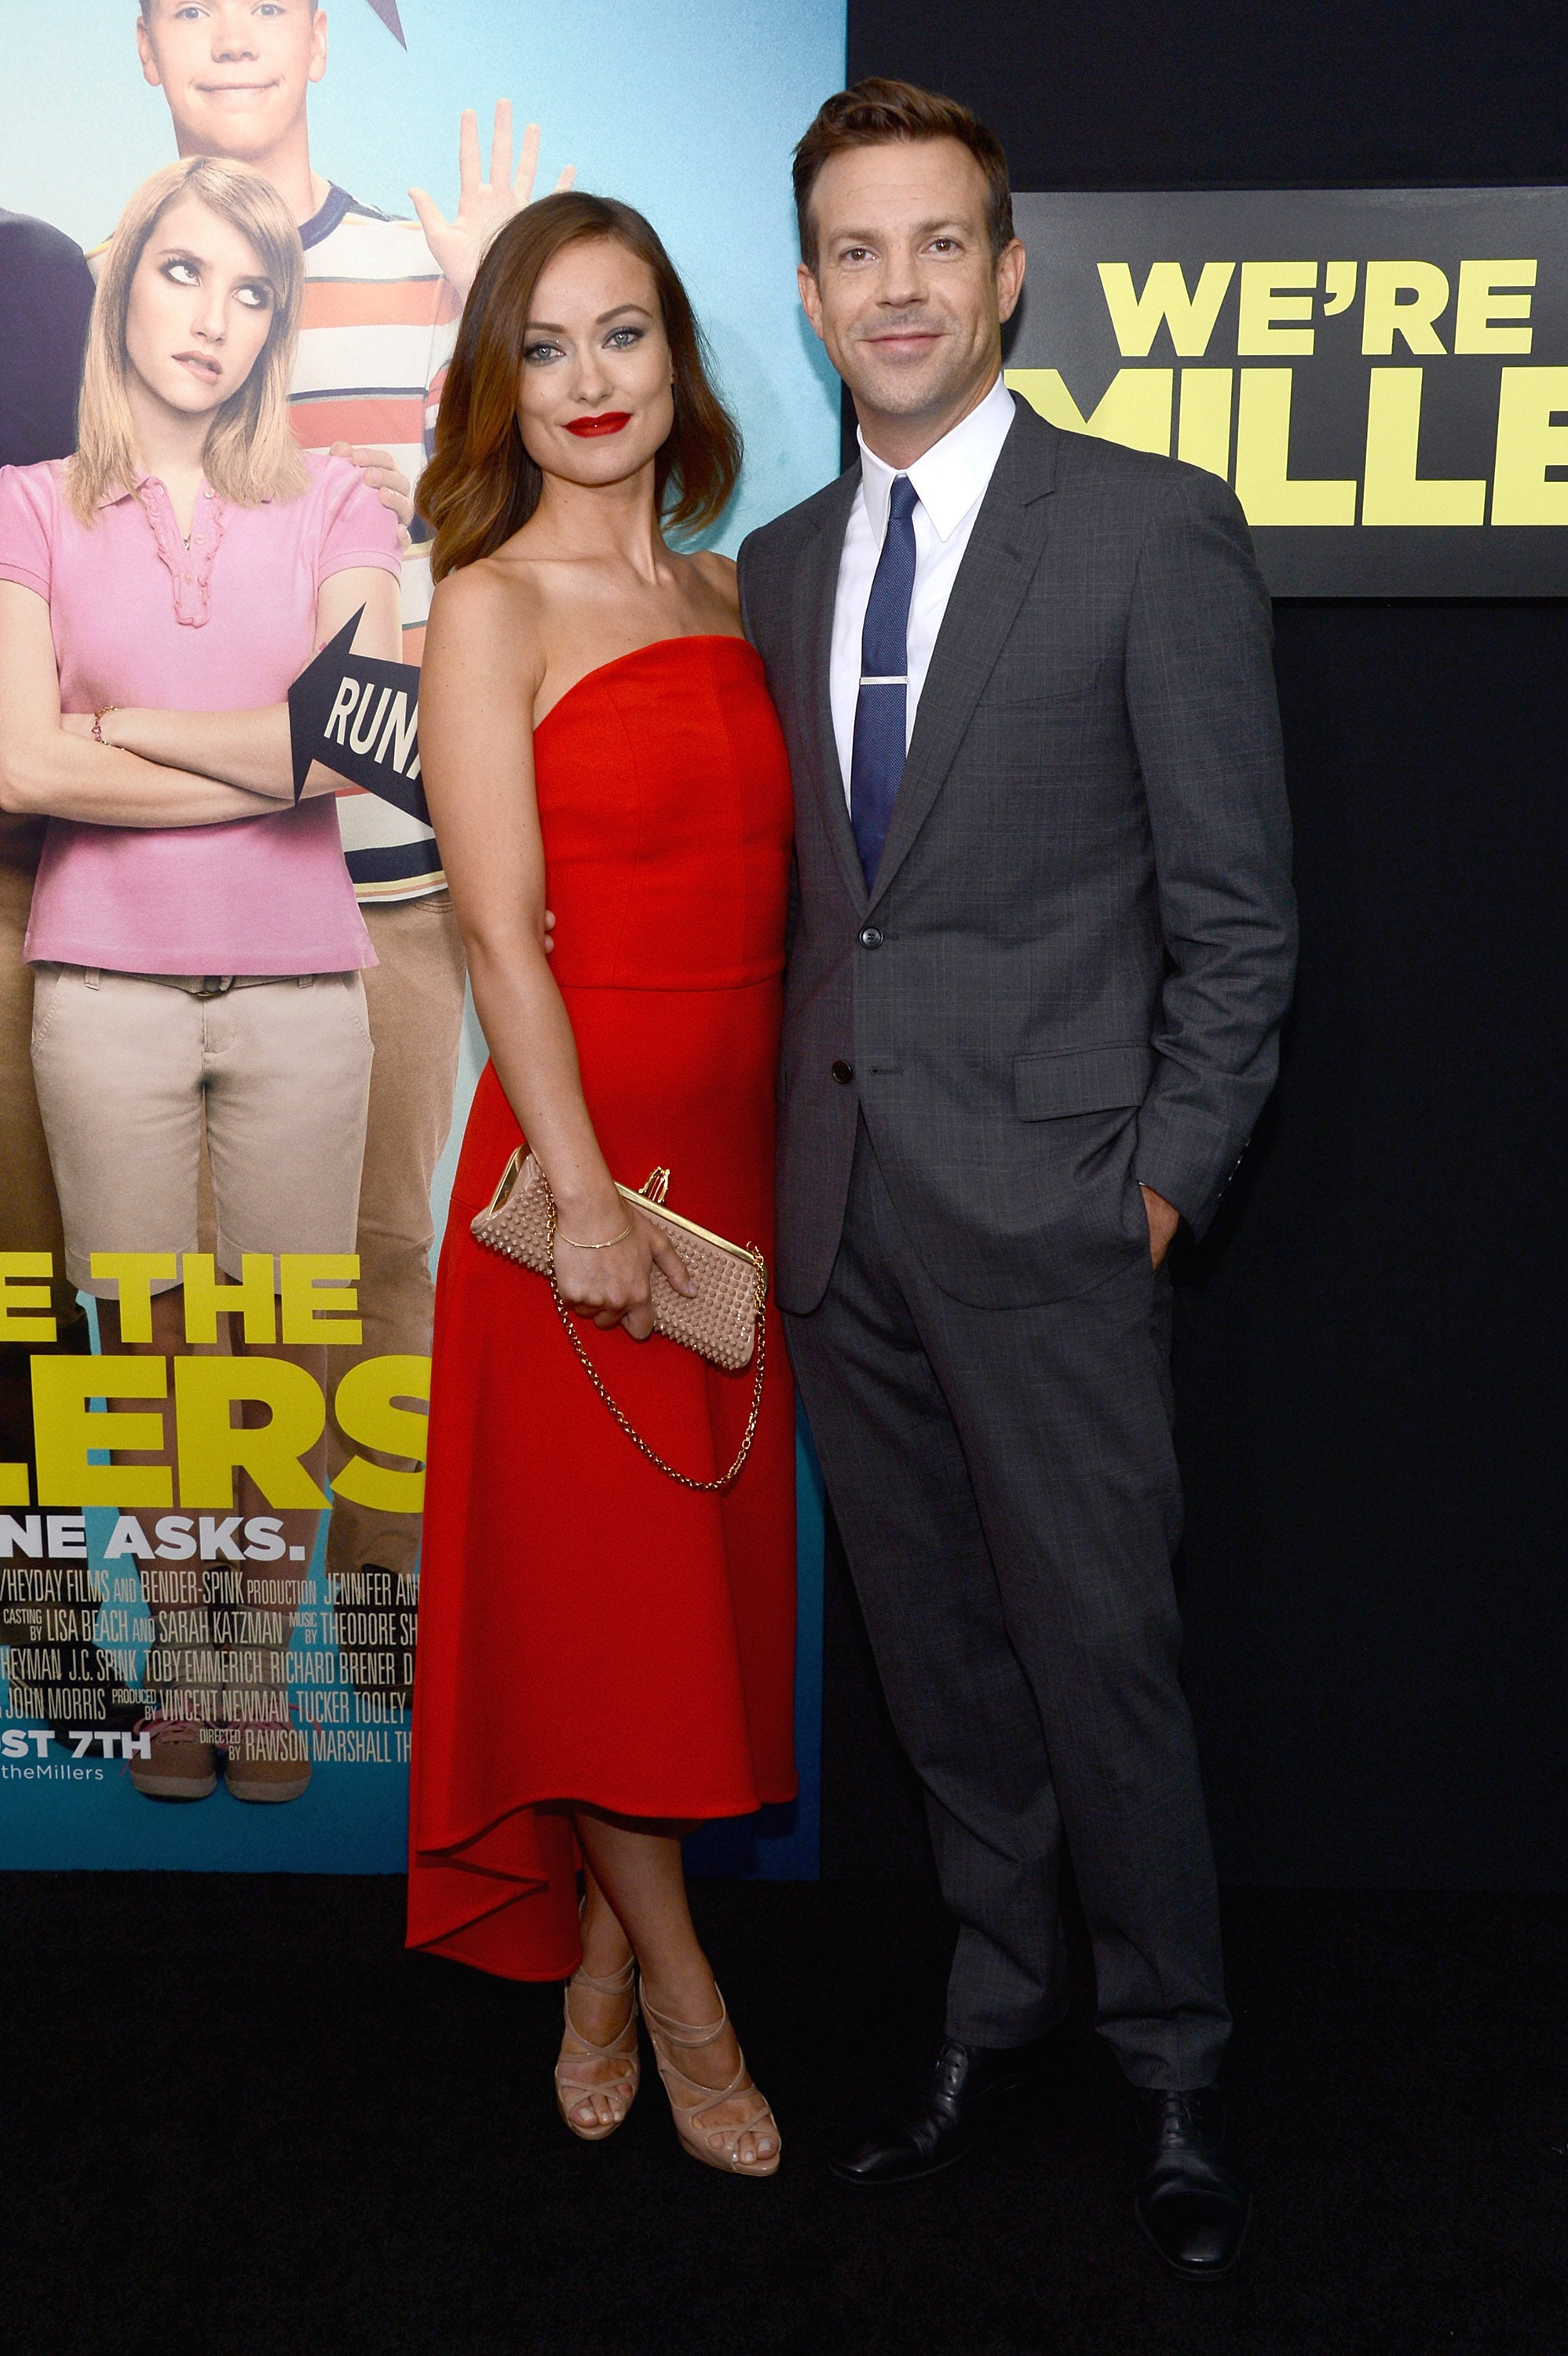 Olivia Wilde made for a red-hot date in Ozman at the We're the Millers premiere with Jason Sudeikis.